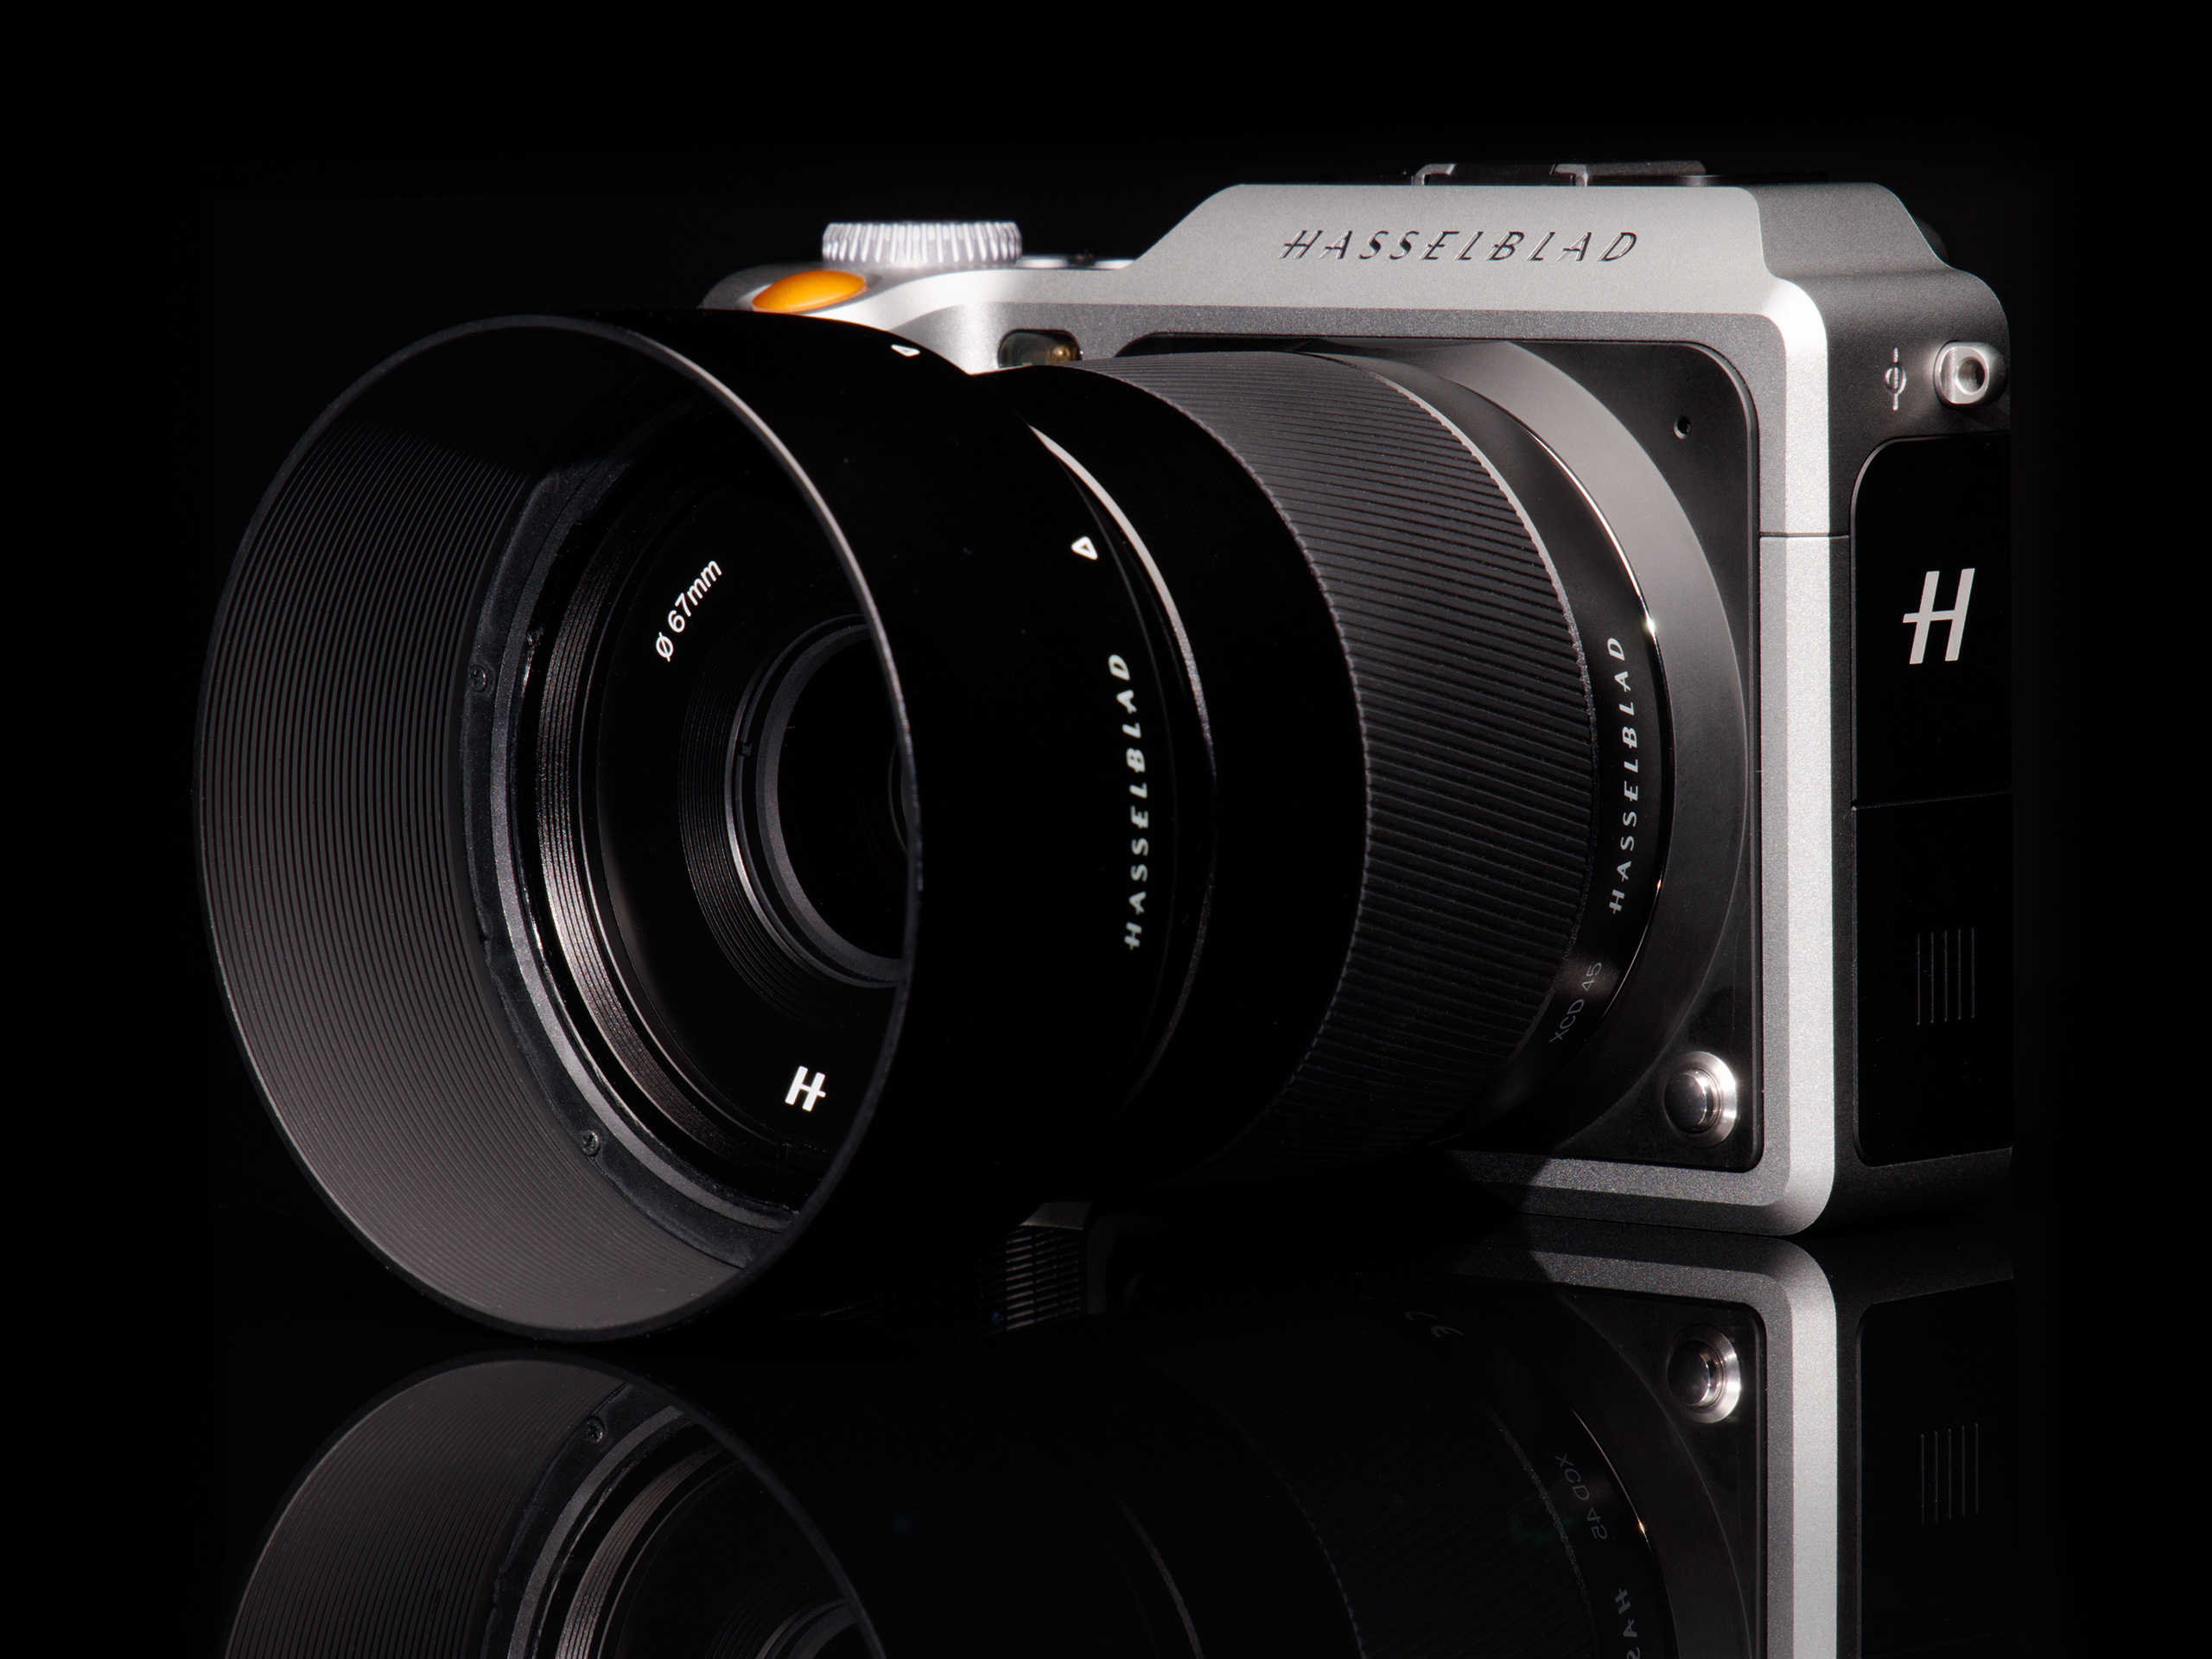 Hasselblad-X1D-50c-Review Hasselblad X1D-50c Review News and Reviews